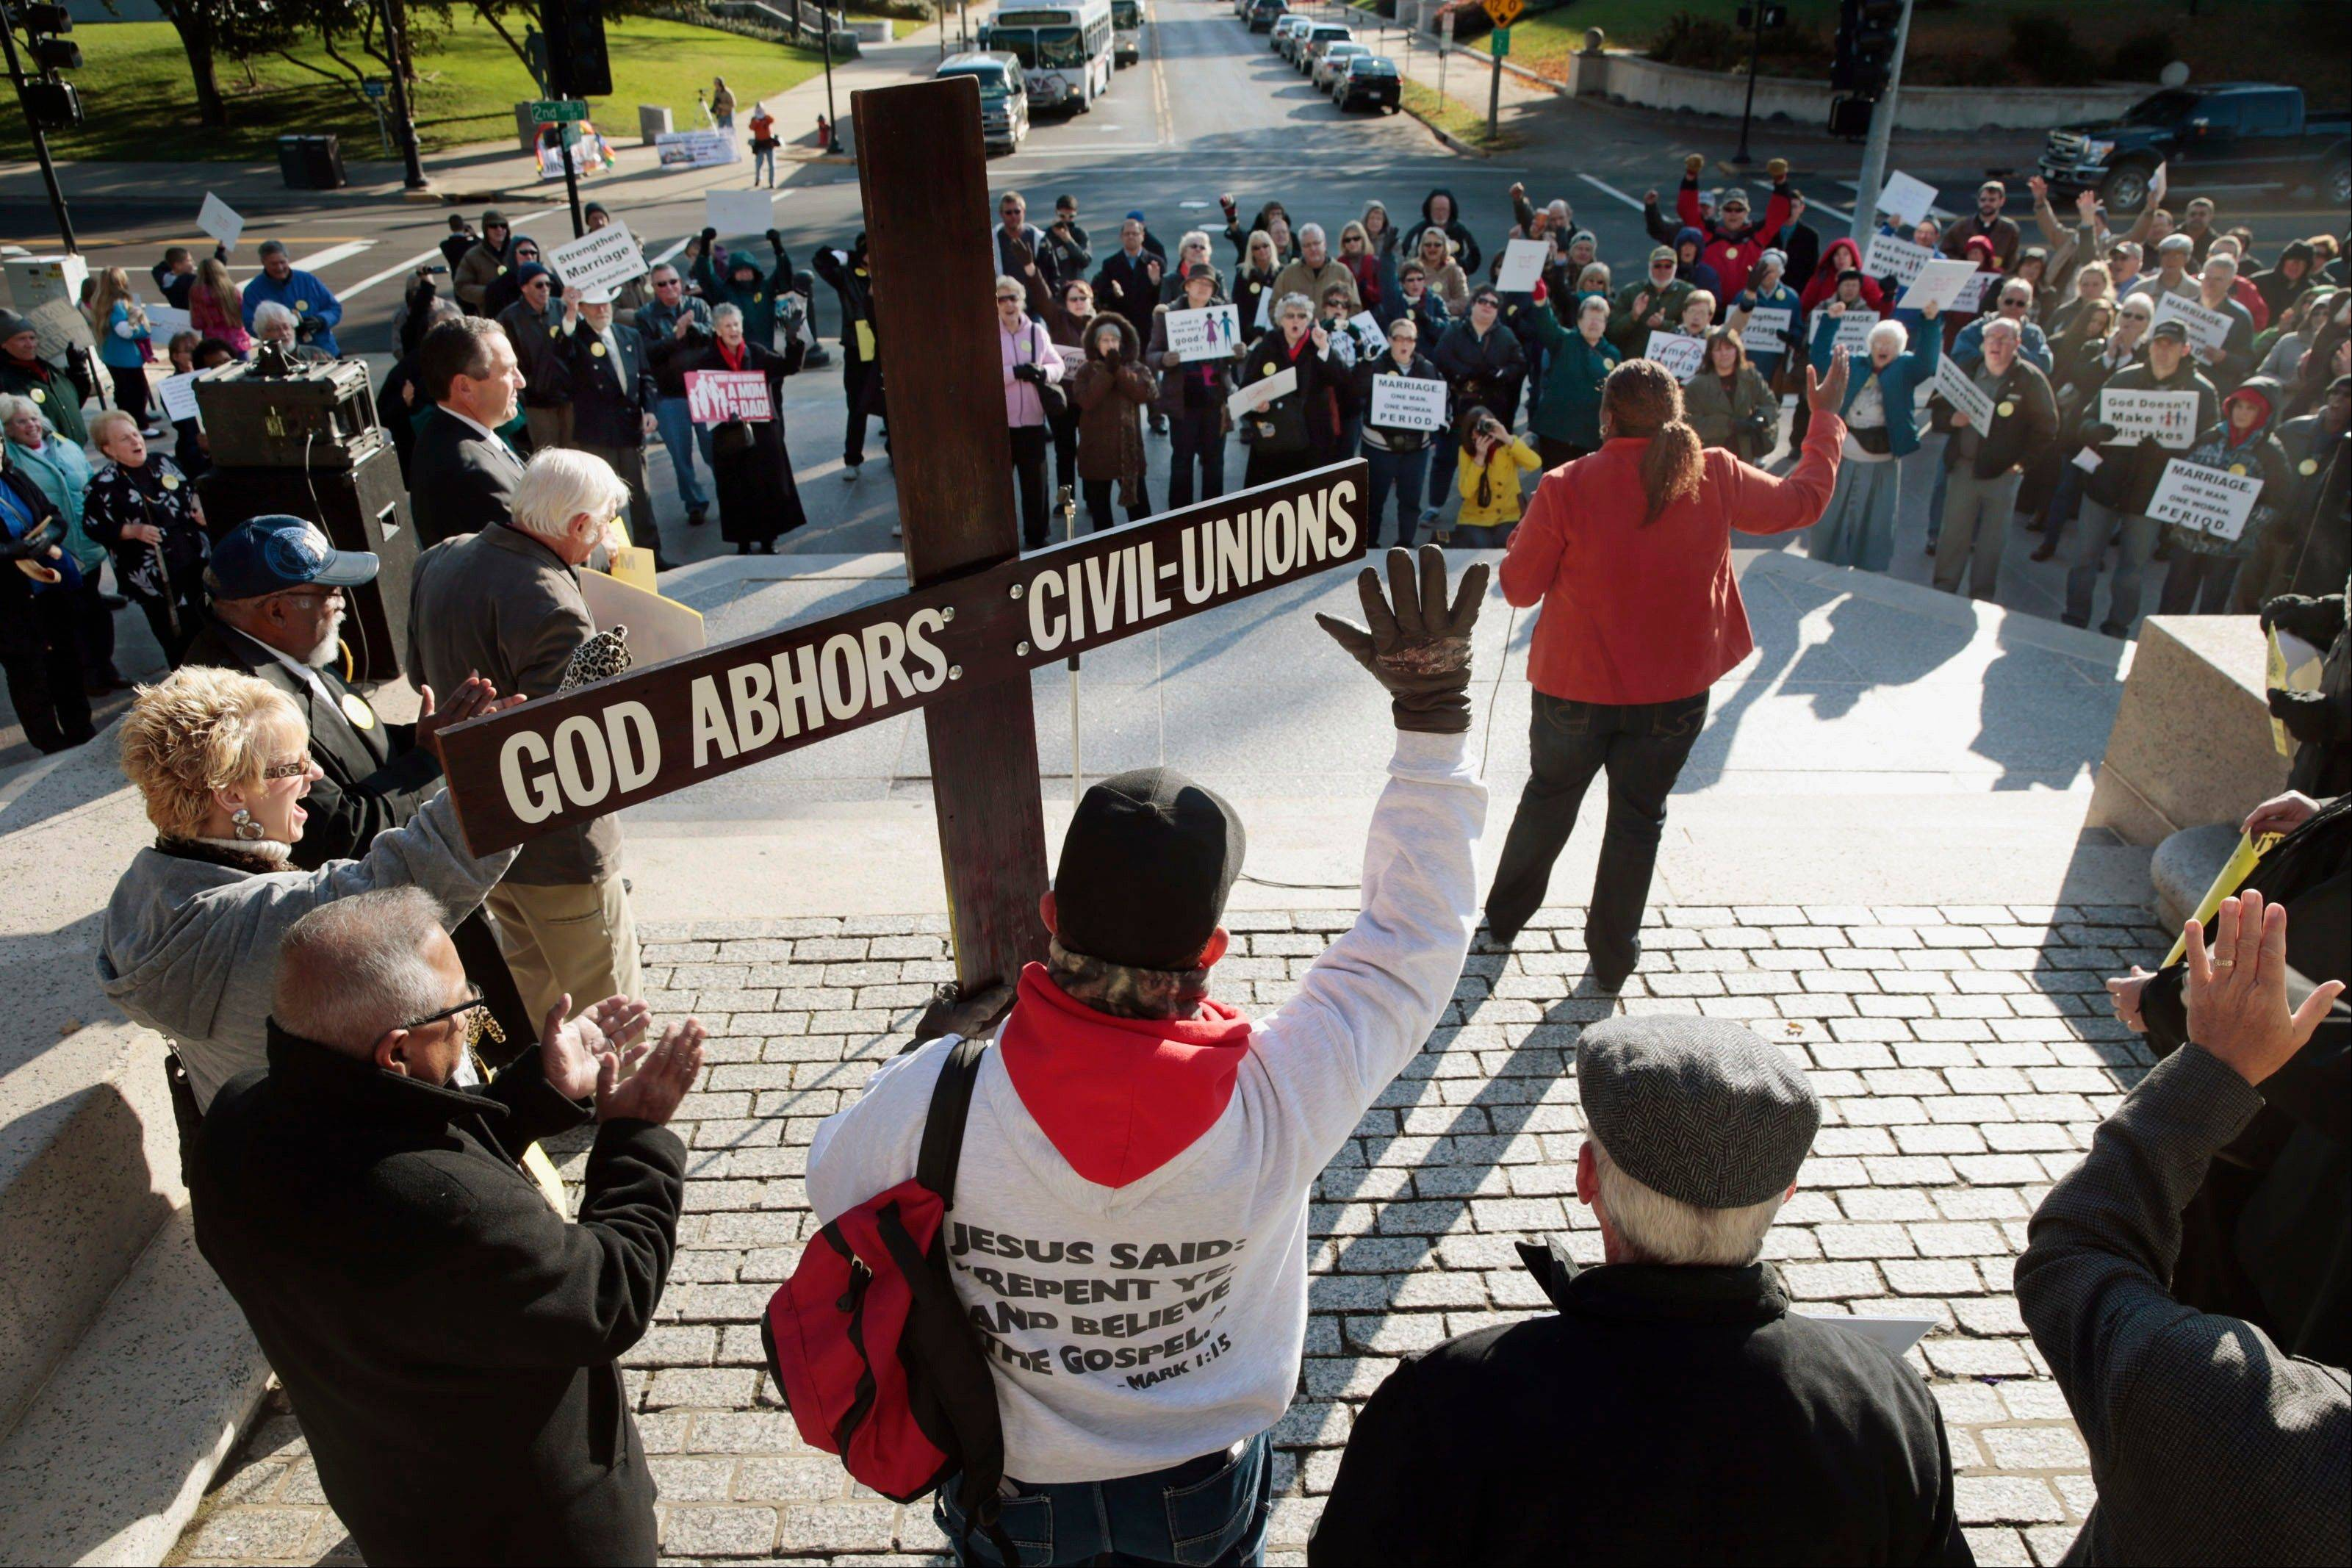 Gay marriage opponents invoke God, free speech